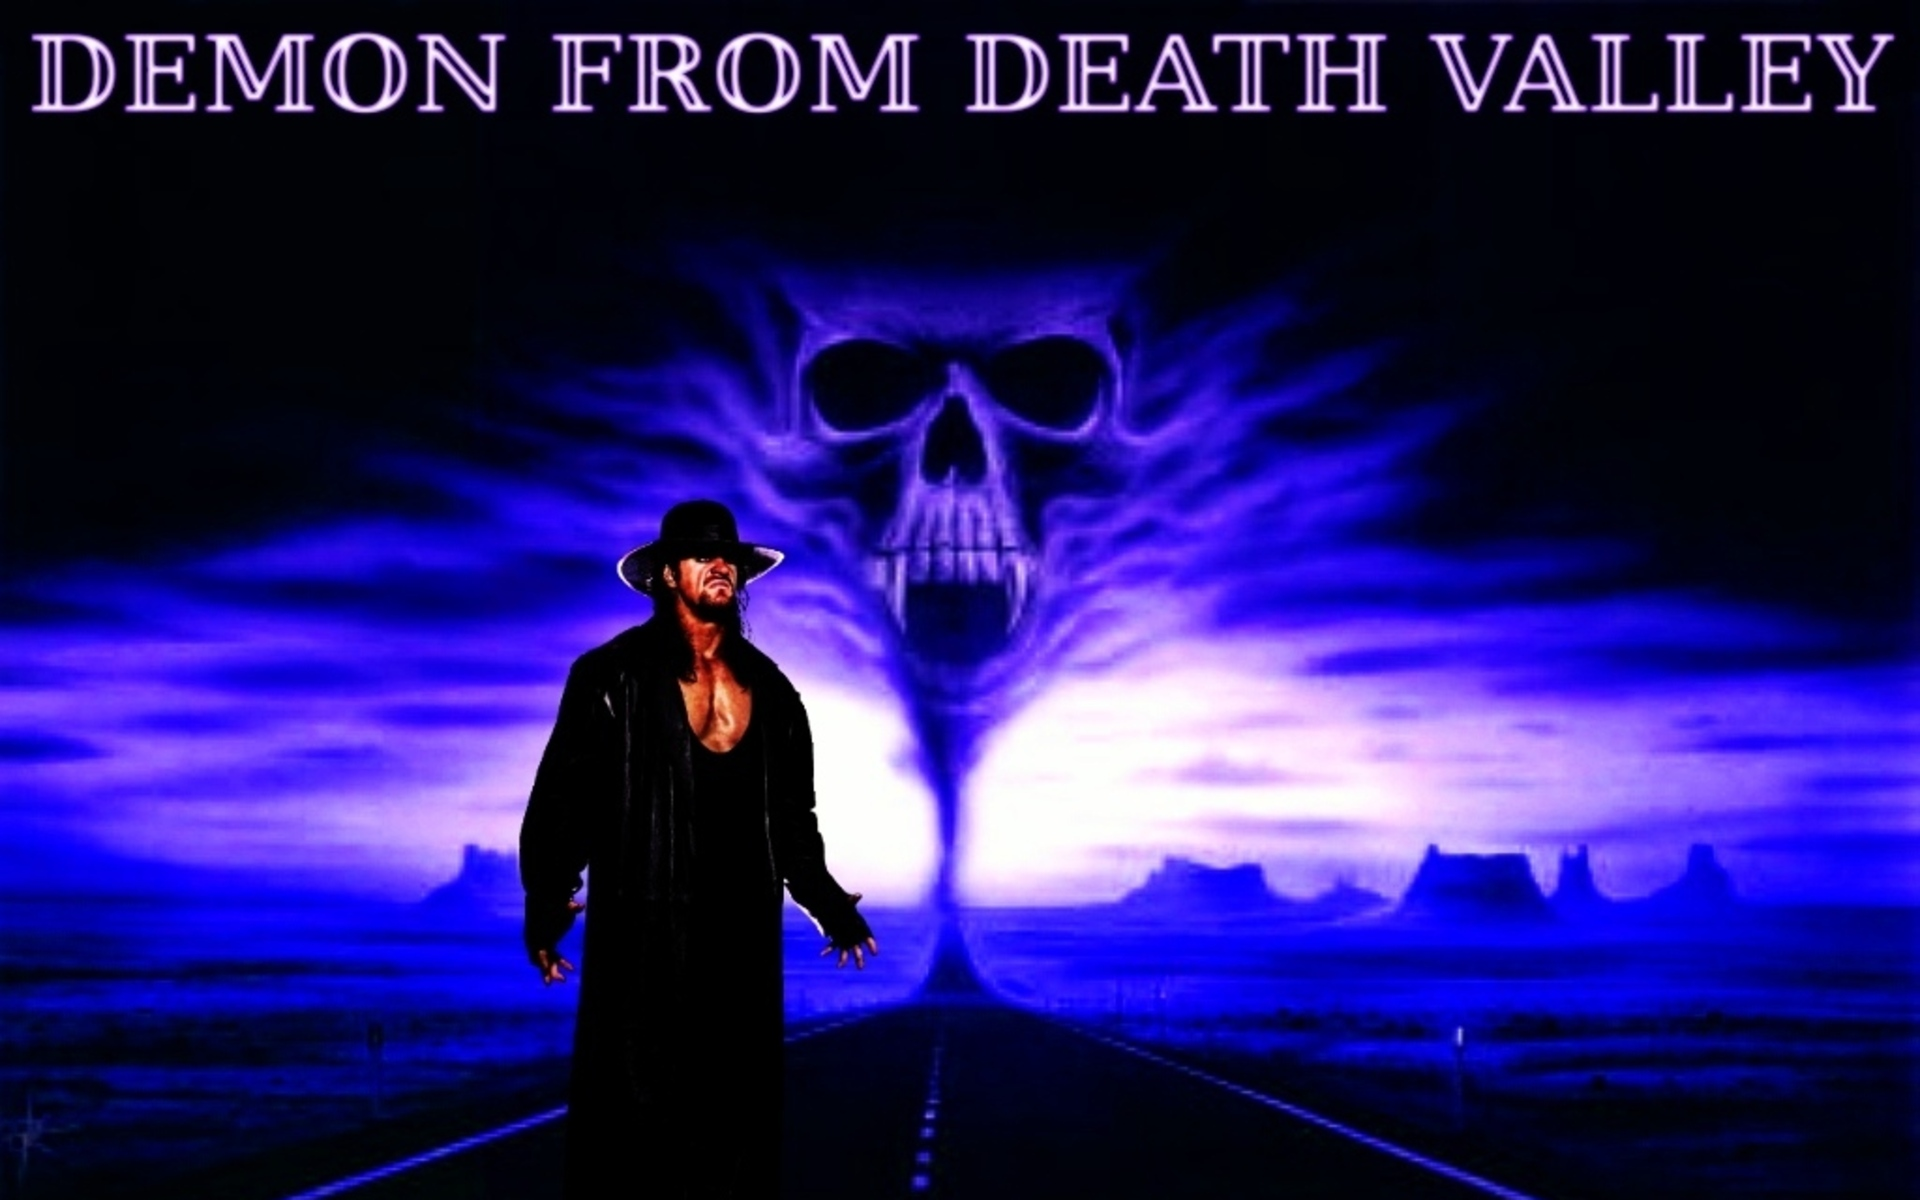 The Undertaker Hd Wallpaper Wwe Full Hd Wallpaper And Background Image 1920x1200